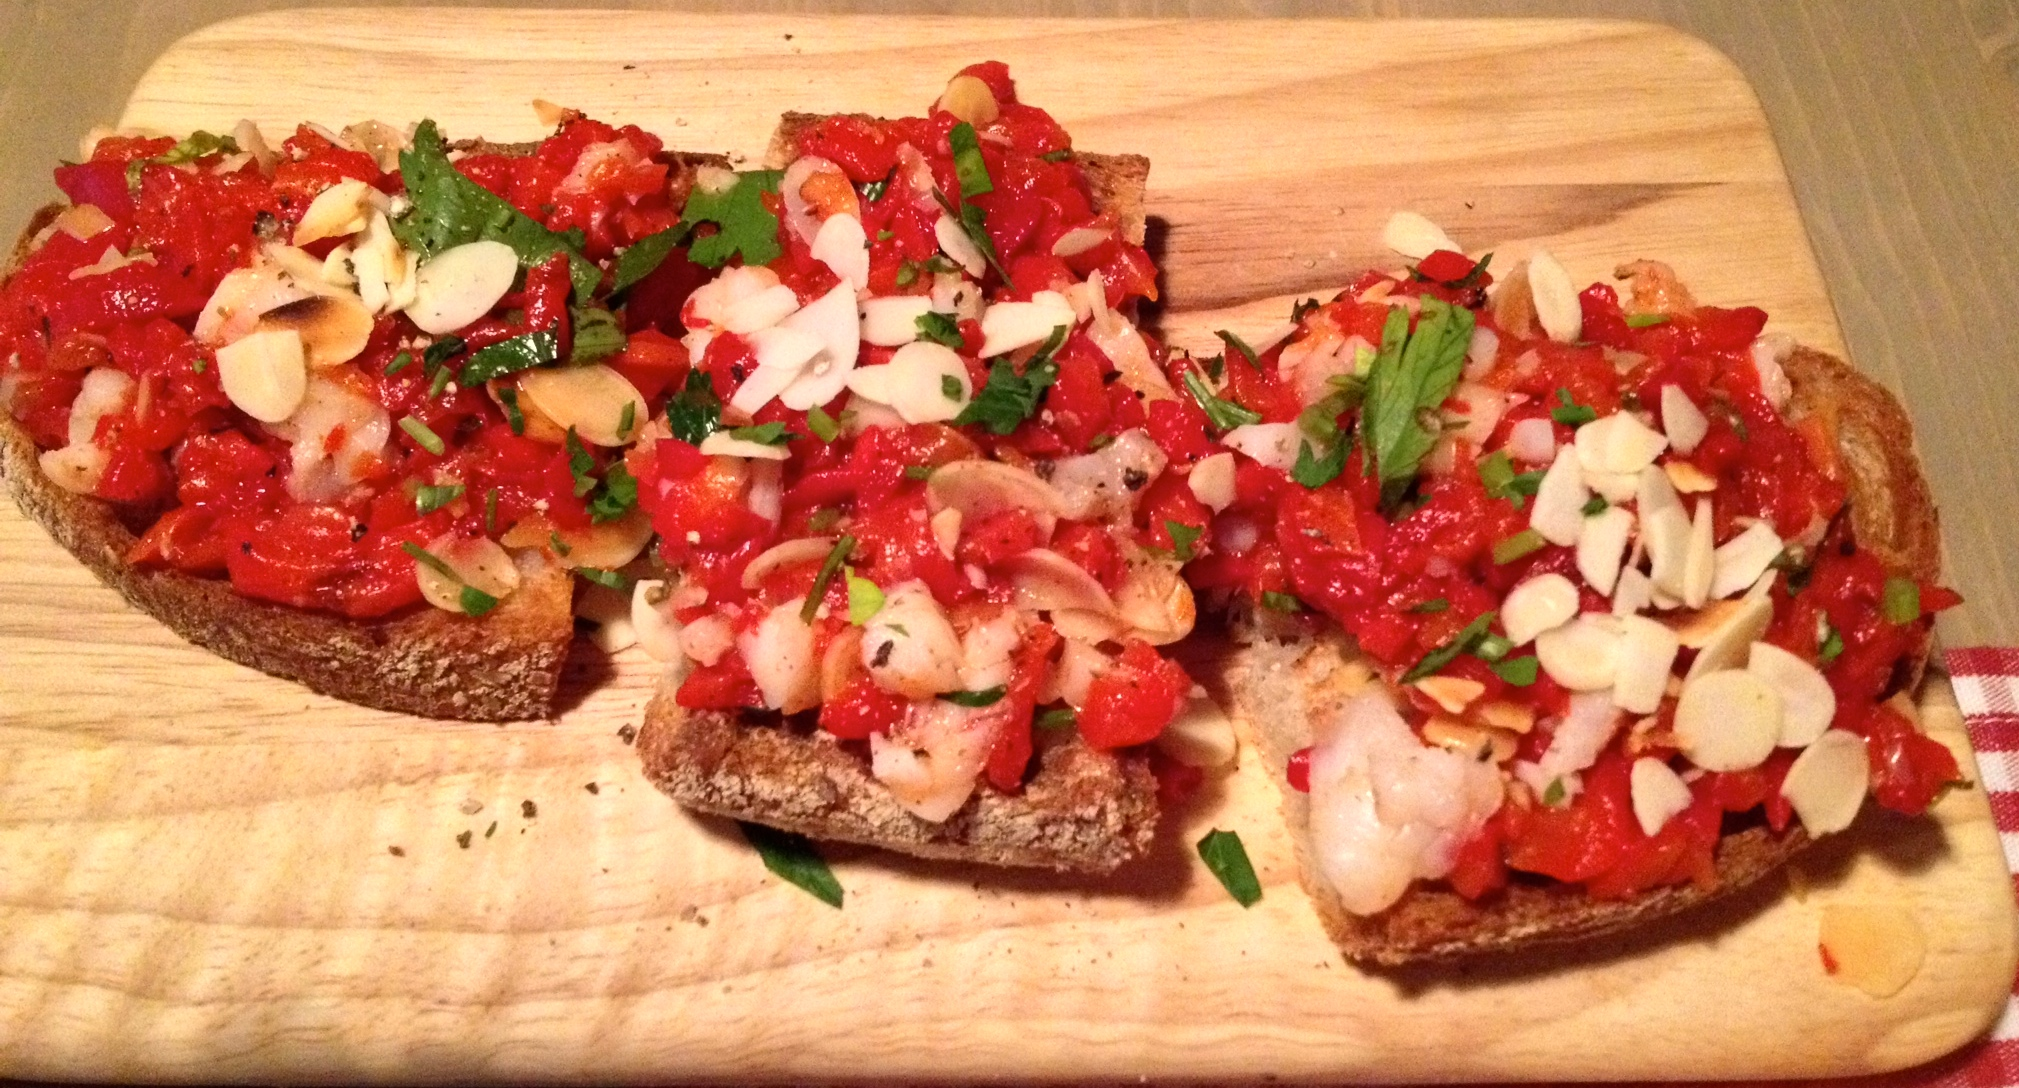 Toasted bread with shrimp, piquillo peppers, and roasted almonds